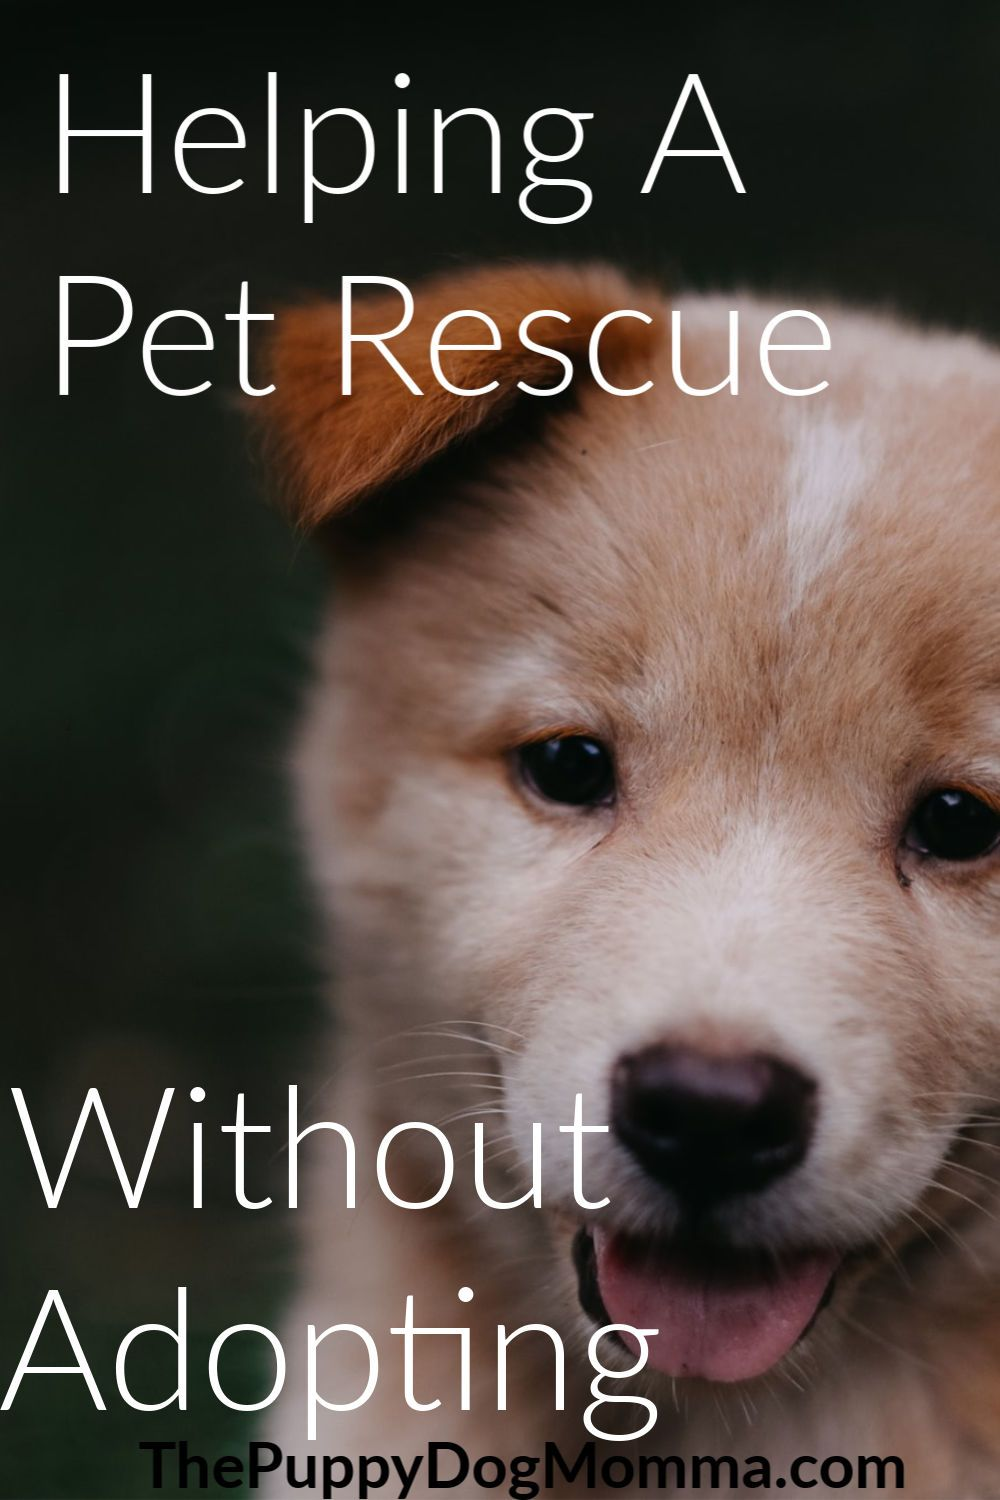 Tis' the season for giving and those pets in shelters need